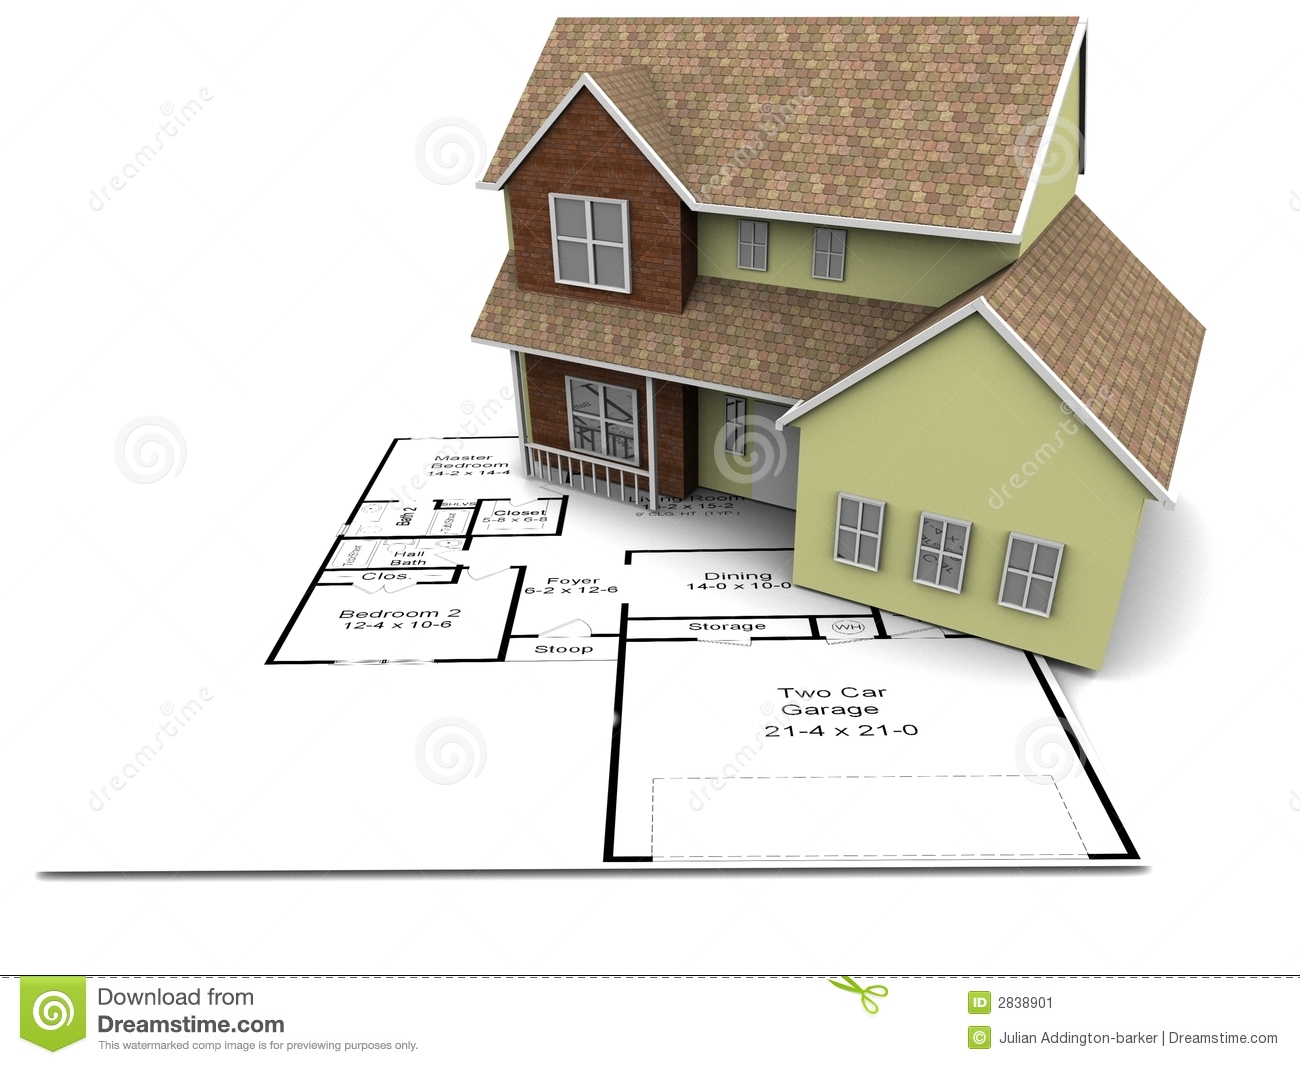 New house plans stock image image 2838901 - New house plan photos ...